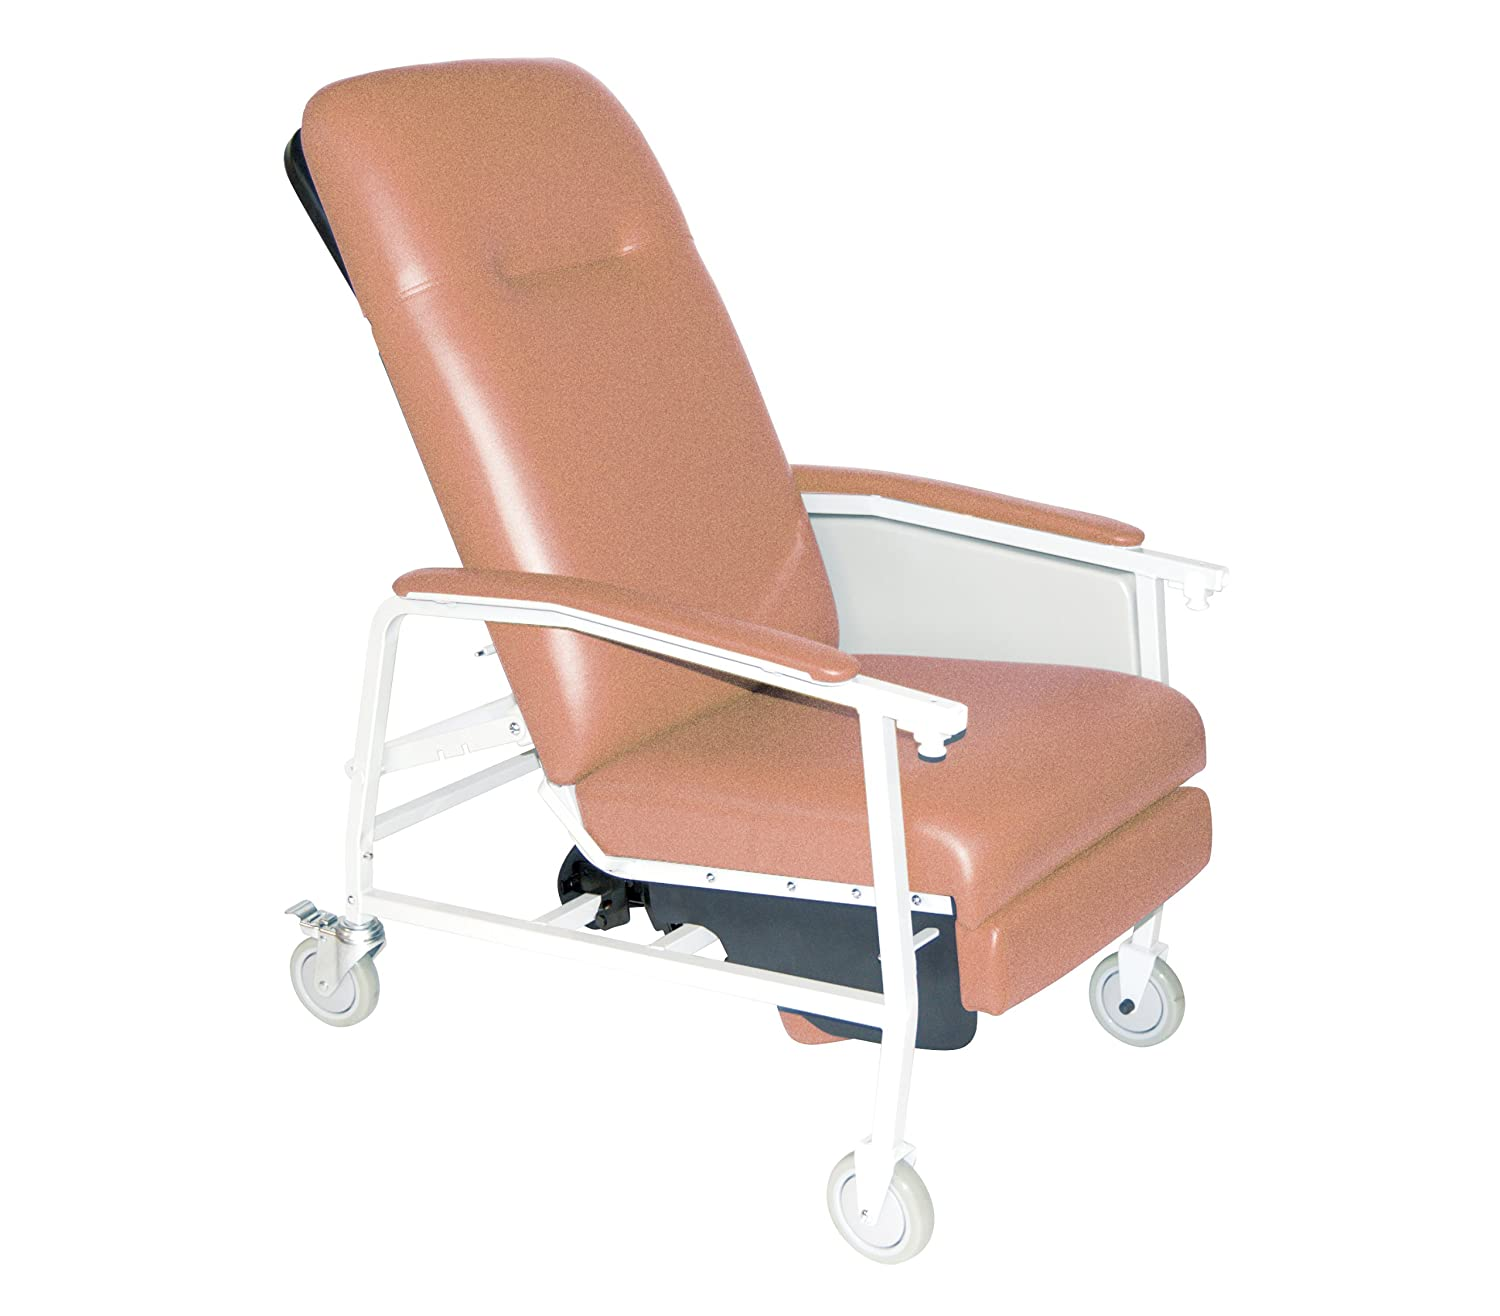 Amazon.com Drive Medical 3 Position Geri Chair Recliner Rosewood Health u0026 Personal Care  sc 1 st  Amazon.com & Amazon.com: Drive Medical 3 Position Geri Chair Recliner Rosewood ... islam-shia.org